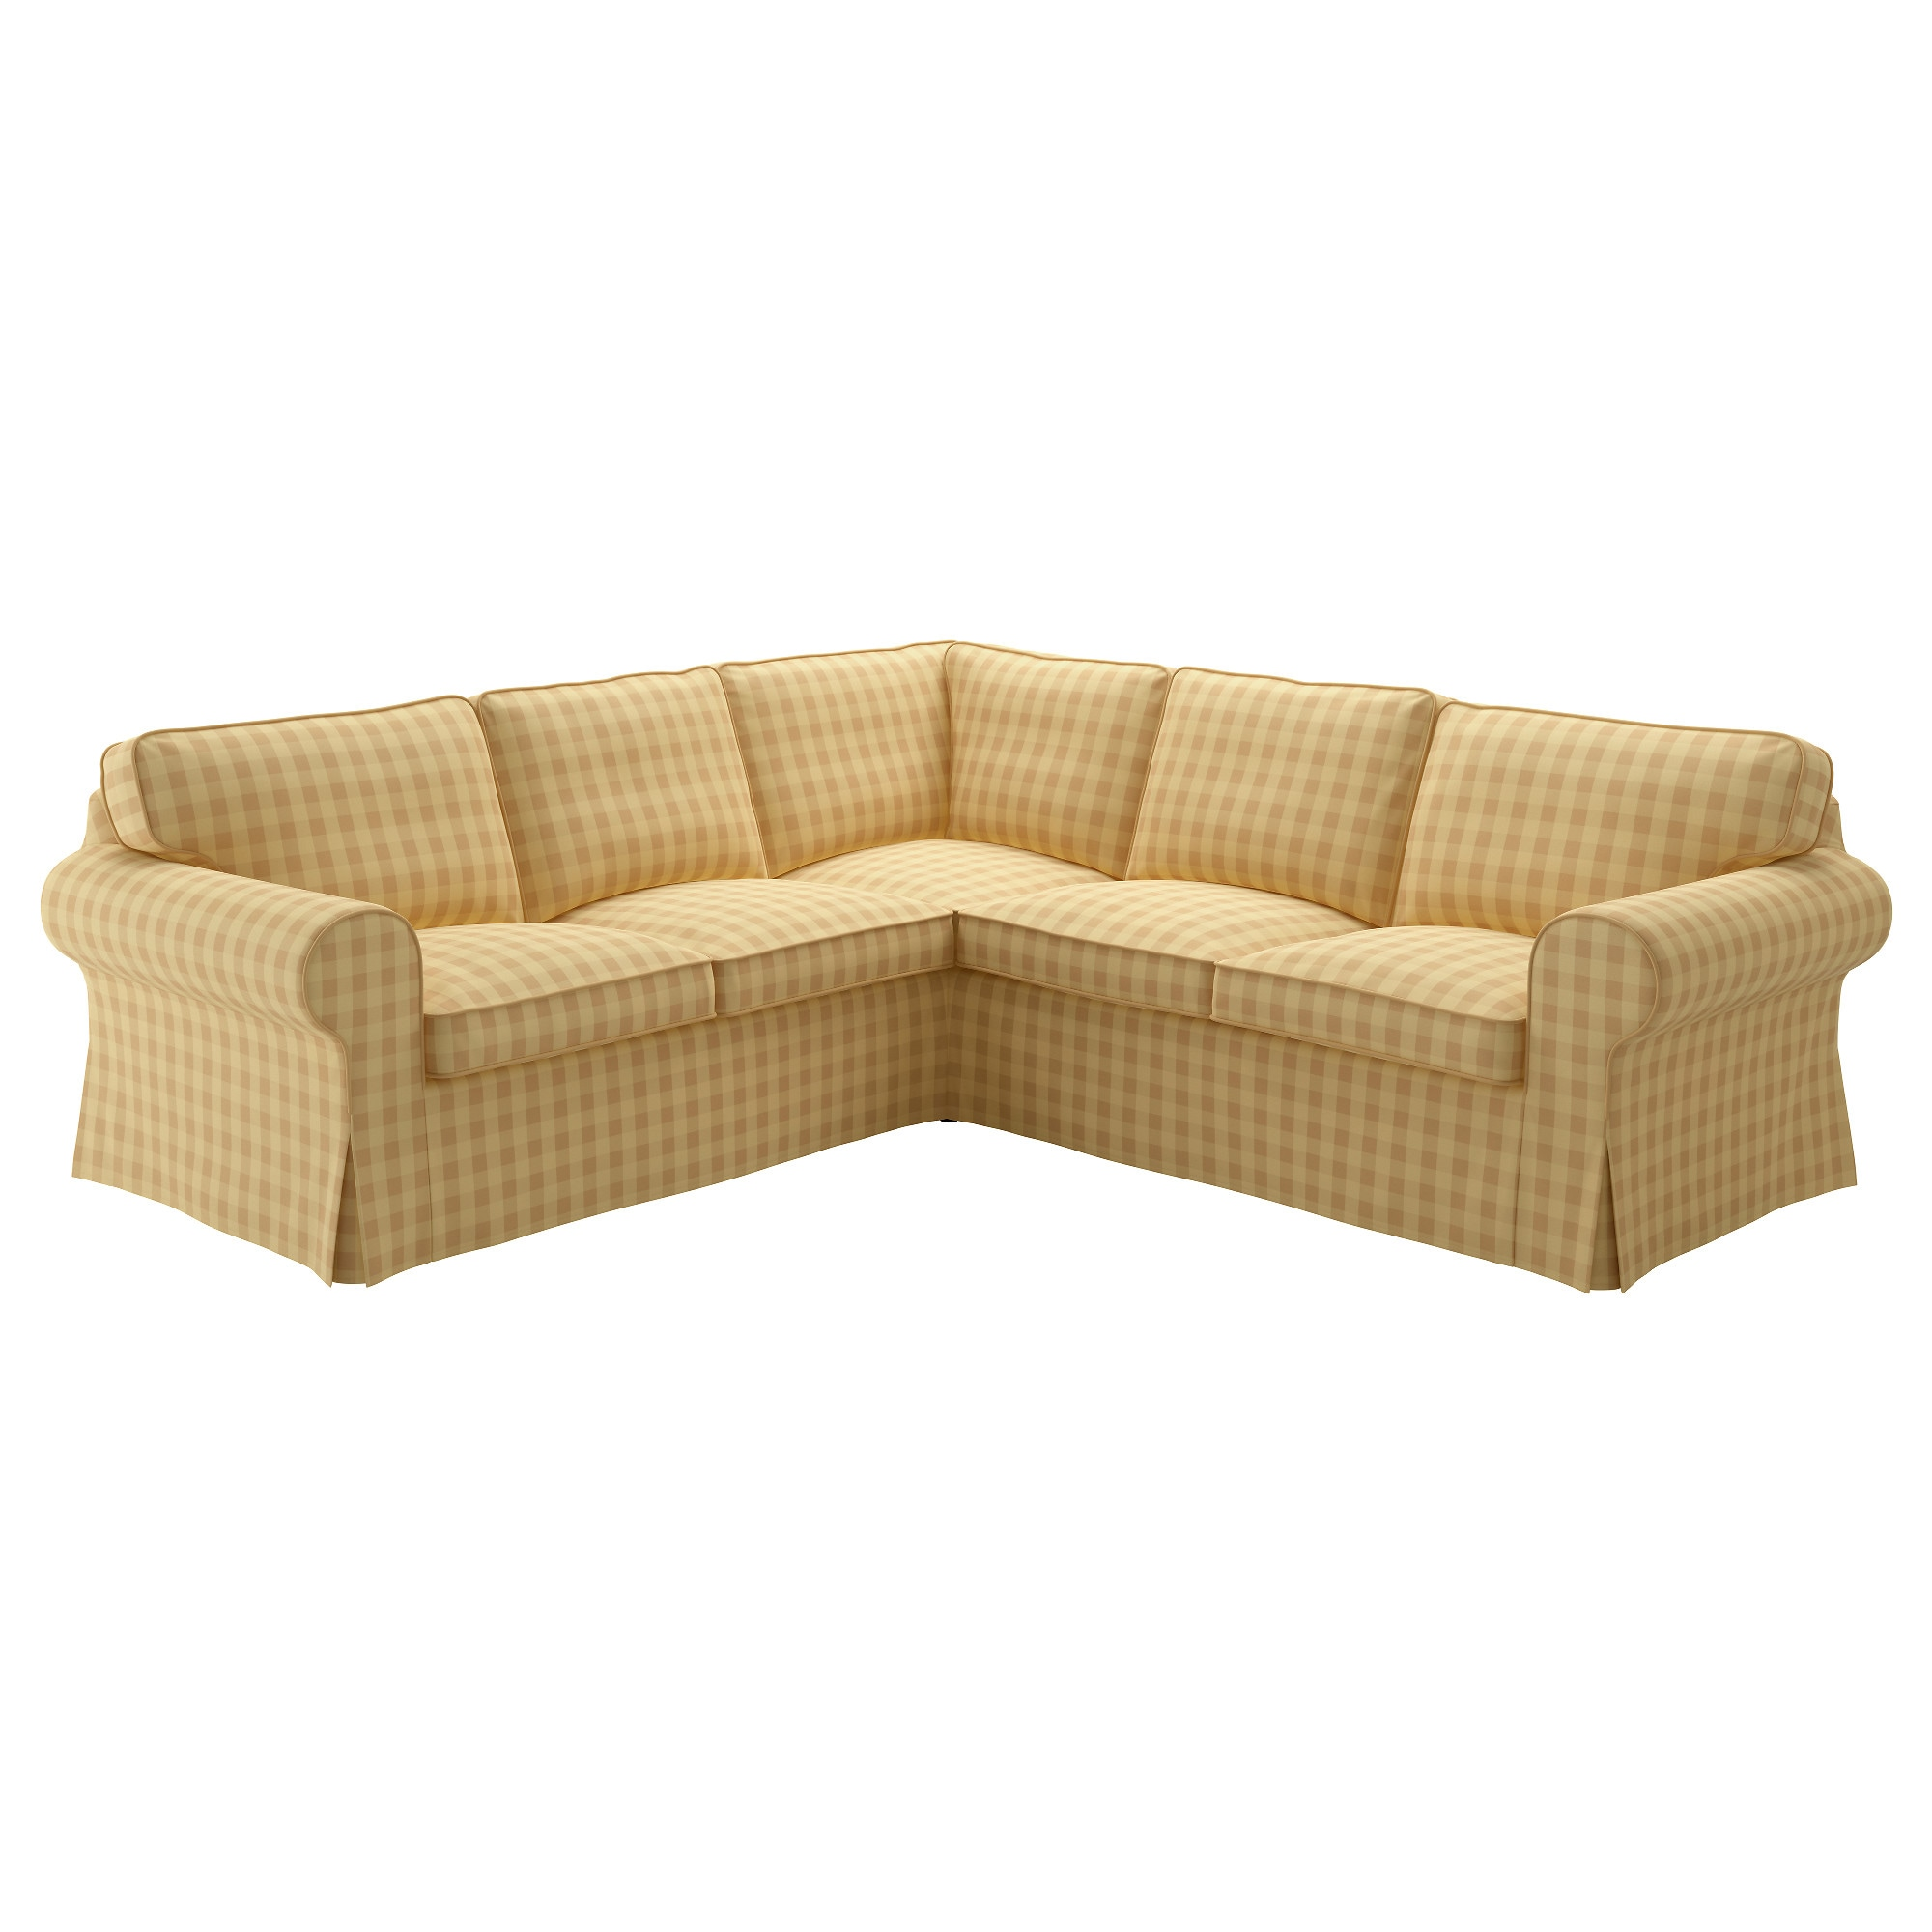 sc 1 st  Ikea : ikea ektorp sectional sofa - Sectionals, Sofas & Couches